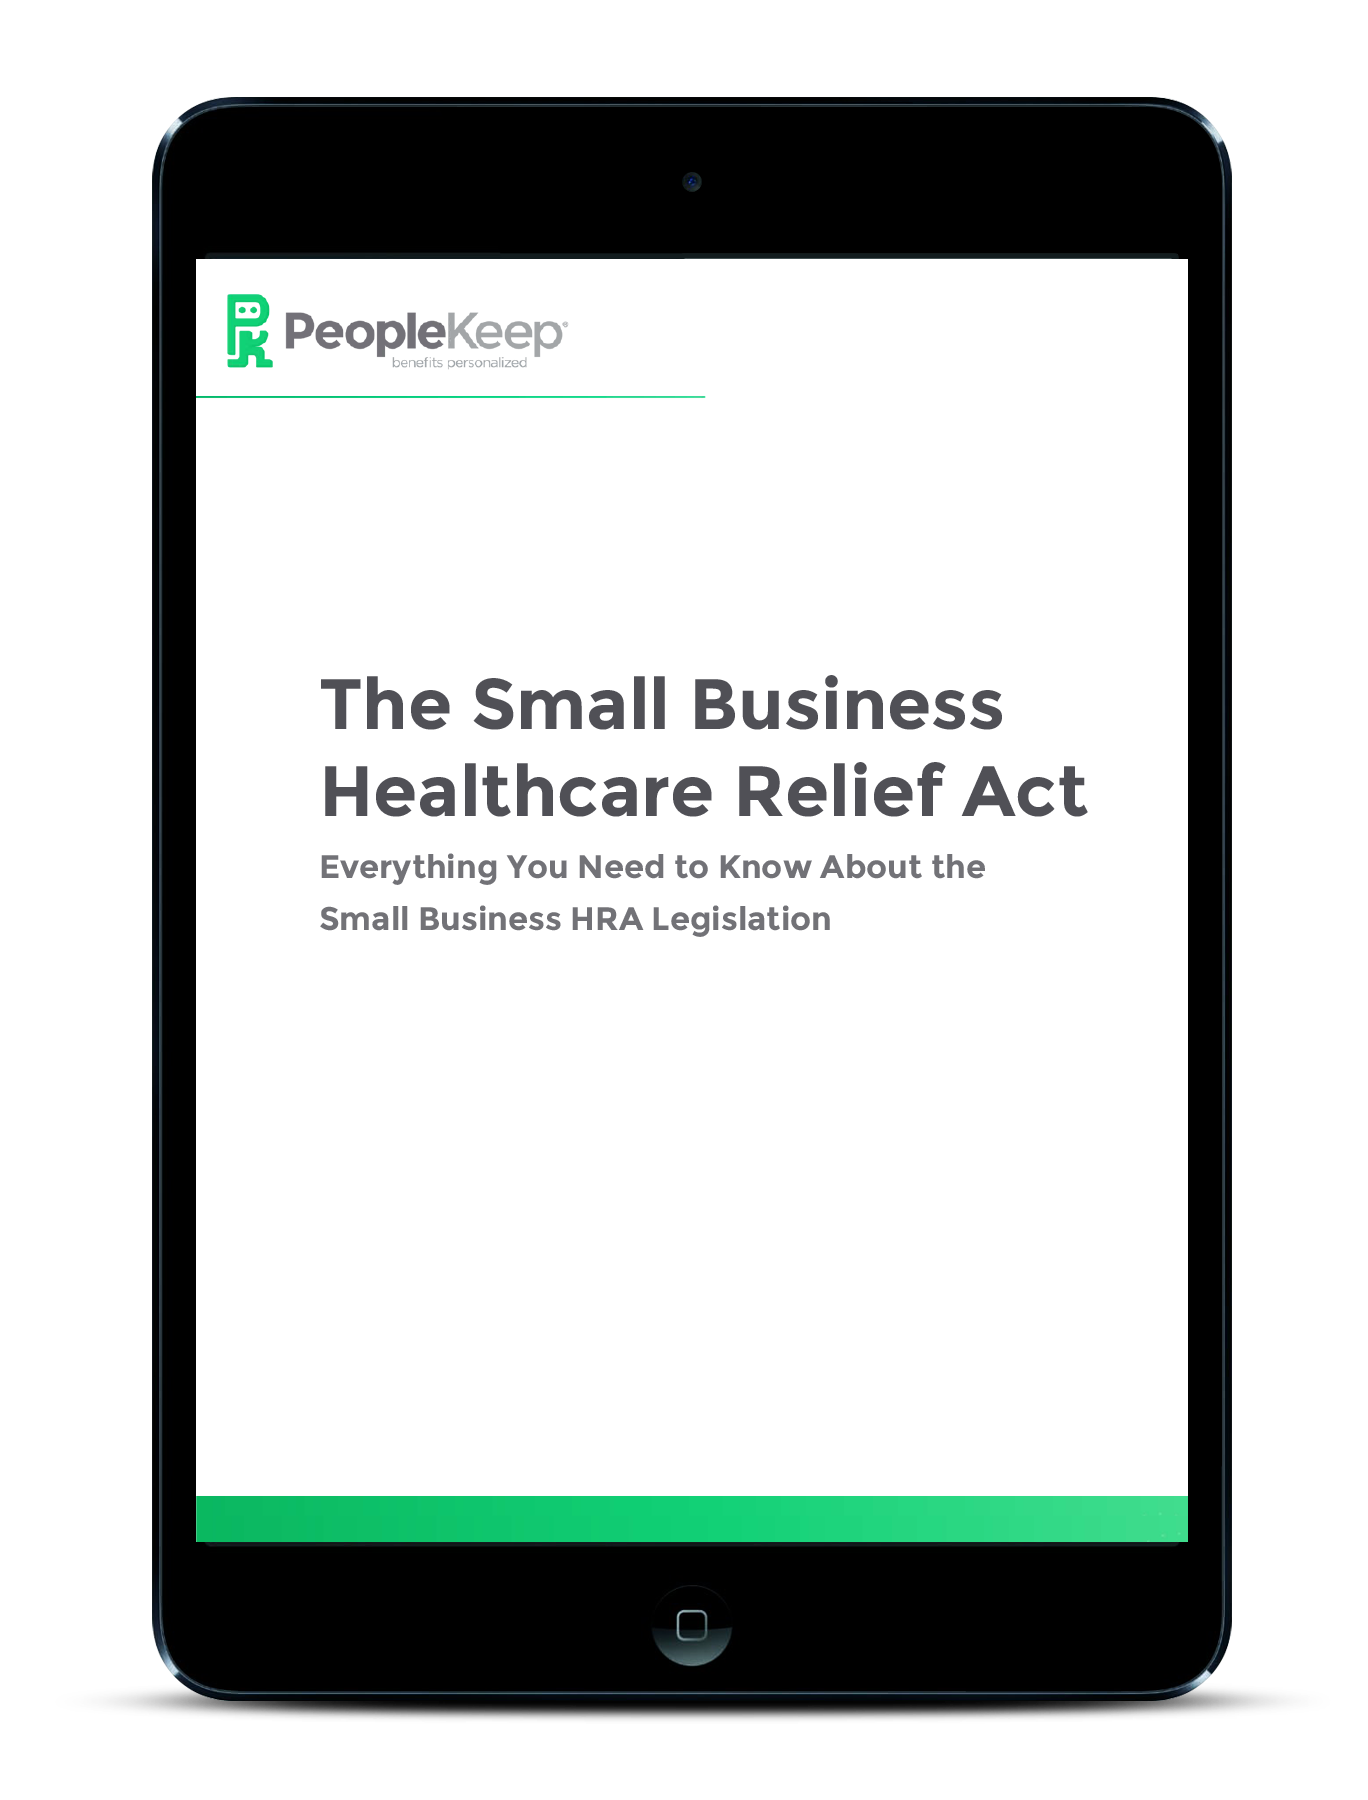 SBHRA - Download the eBook to learn abou the Small Business HRA legislation